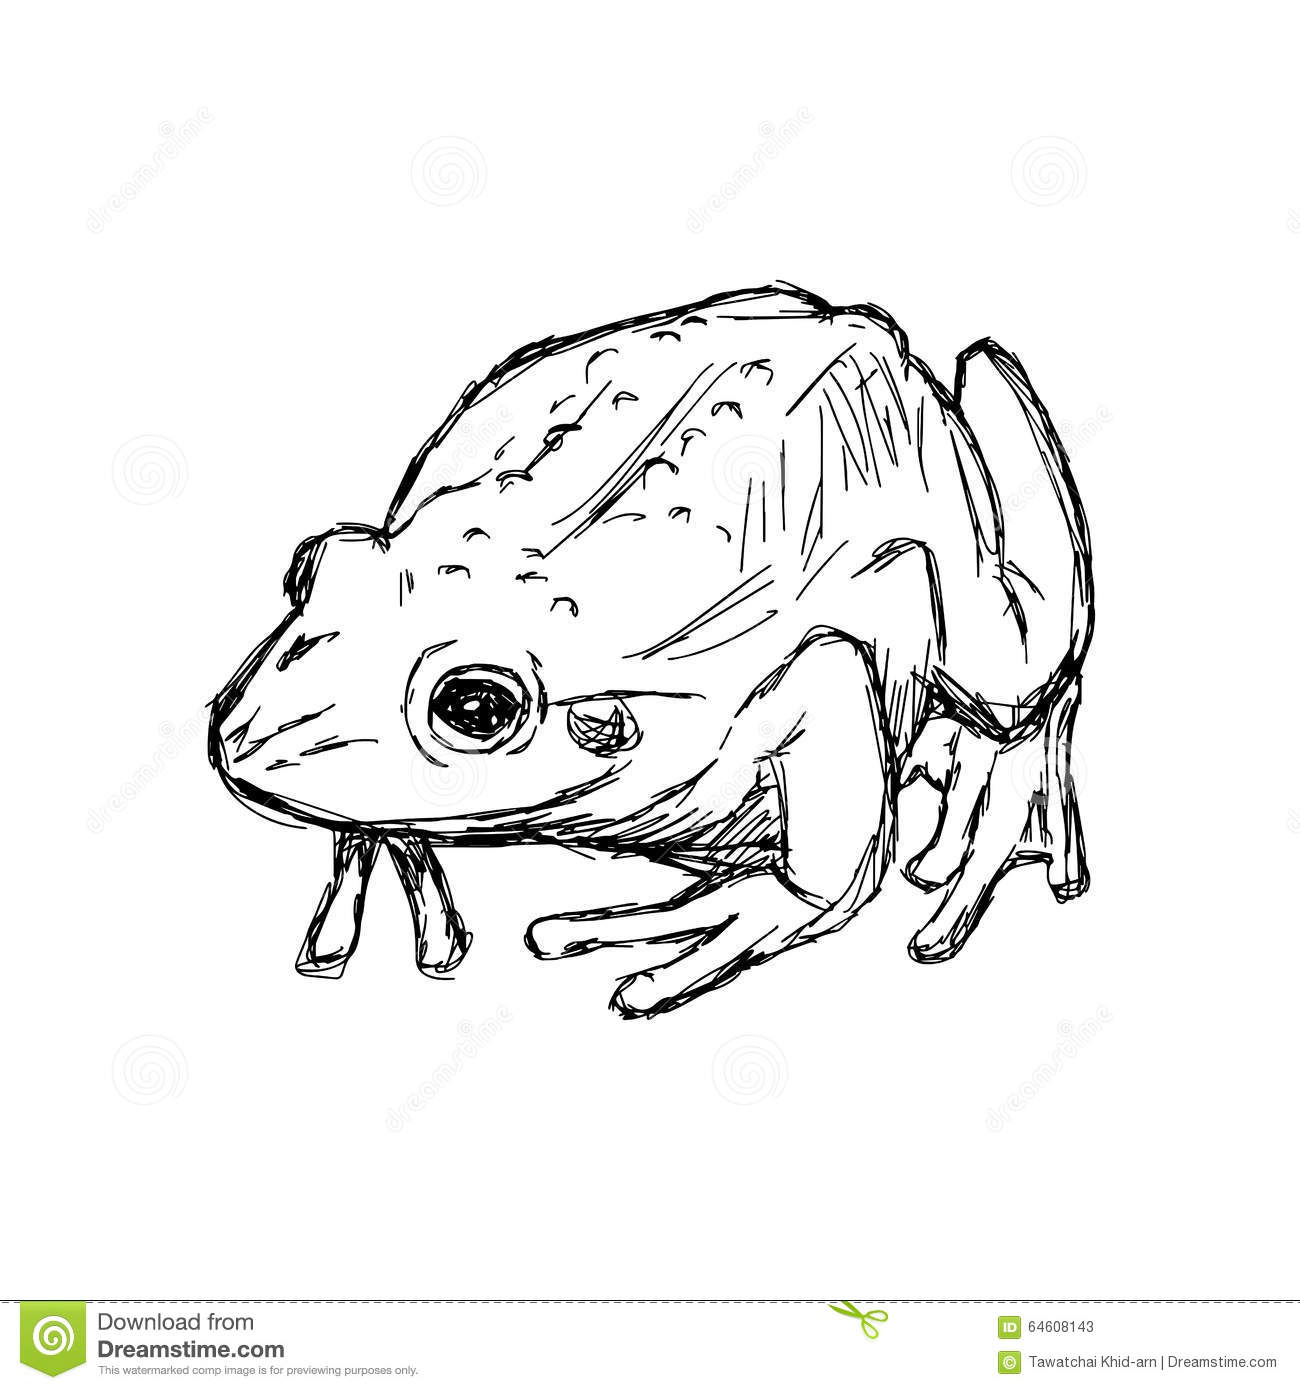 Illustration Hand Drawn Doodle Toad On White Stock